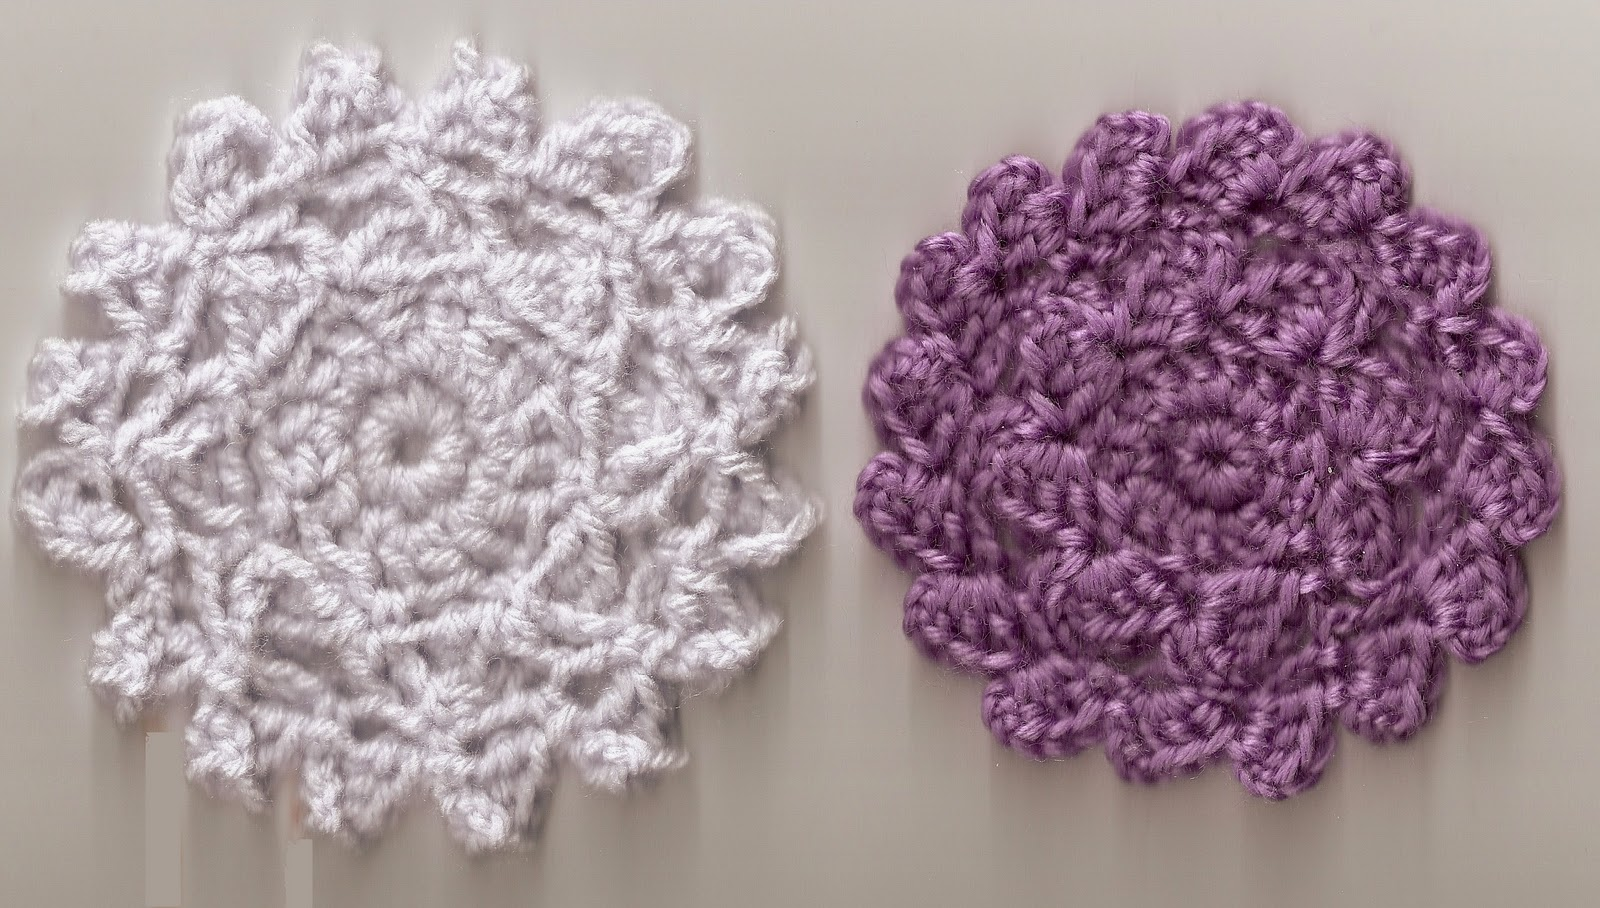 Free Crochet And Knit Patterns : SmoothFox Crochet and Knit: SmoothFoxs Petal Coasters - Free Pattern